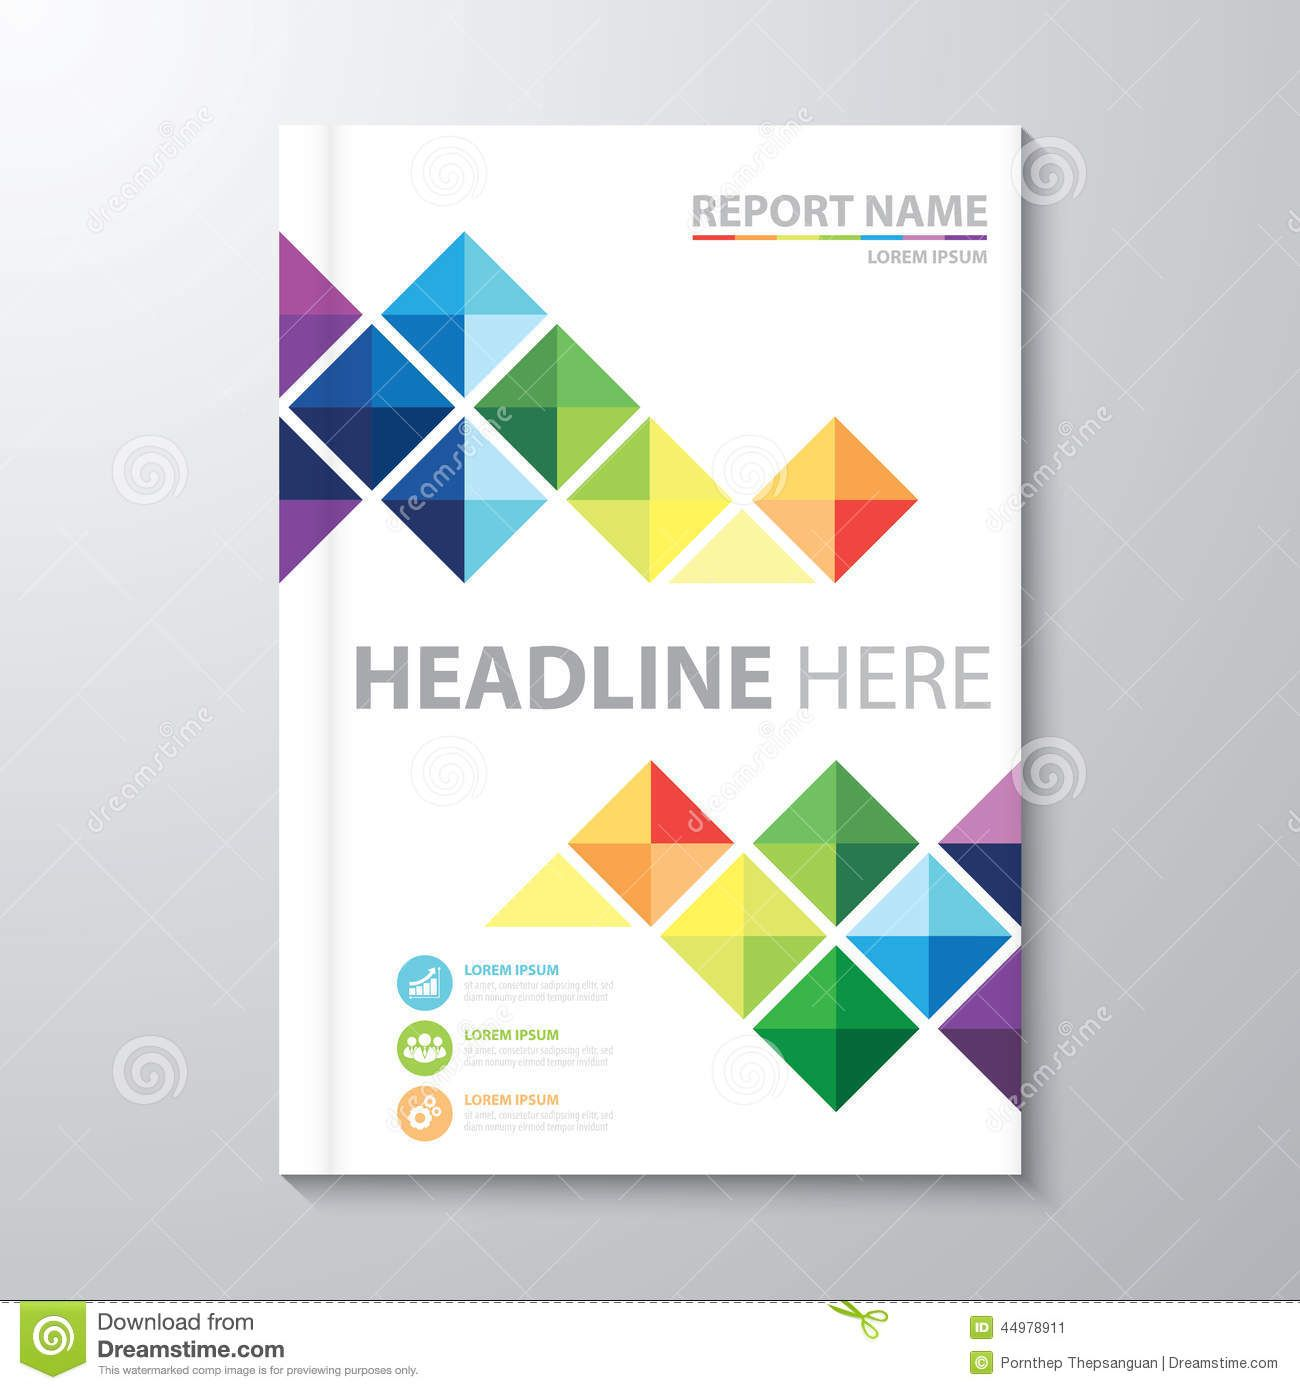 Annual Report Cover Design Template  Cover    Annual